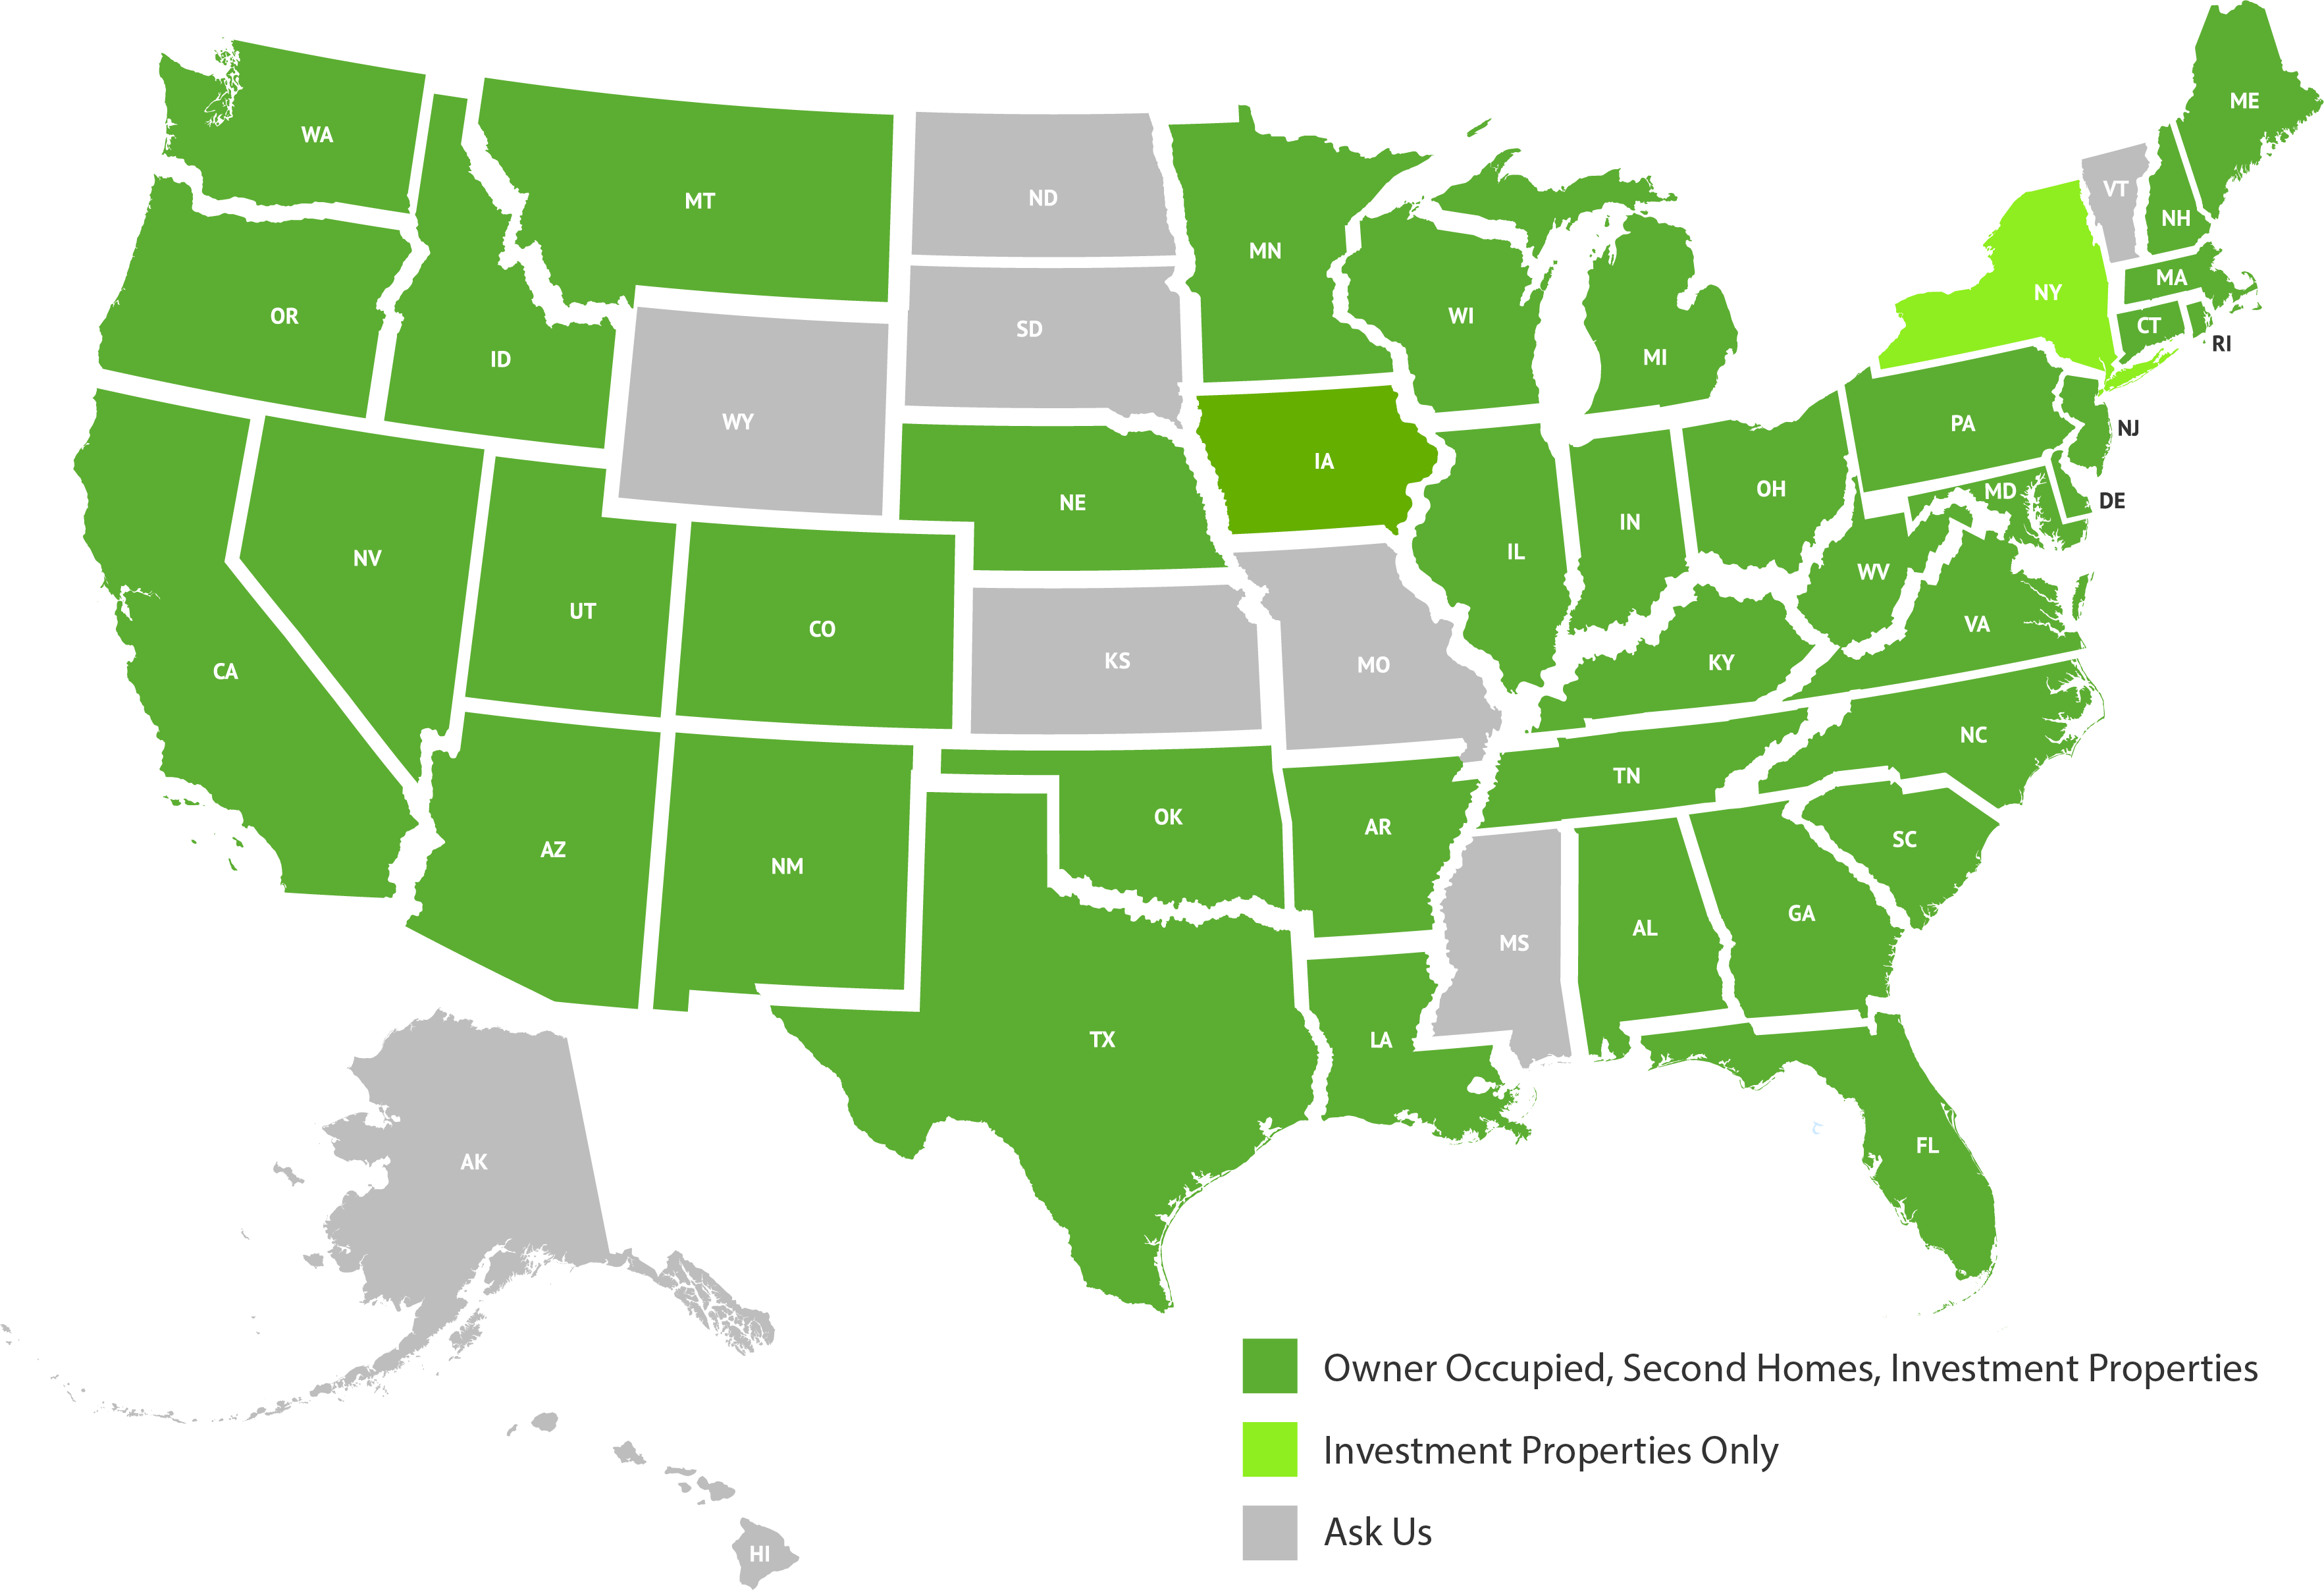 USA map with colored states based on different Mortgage Licensing information